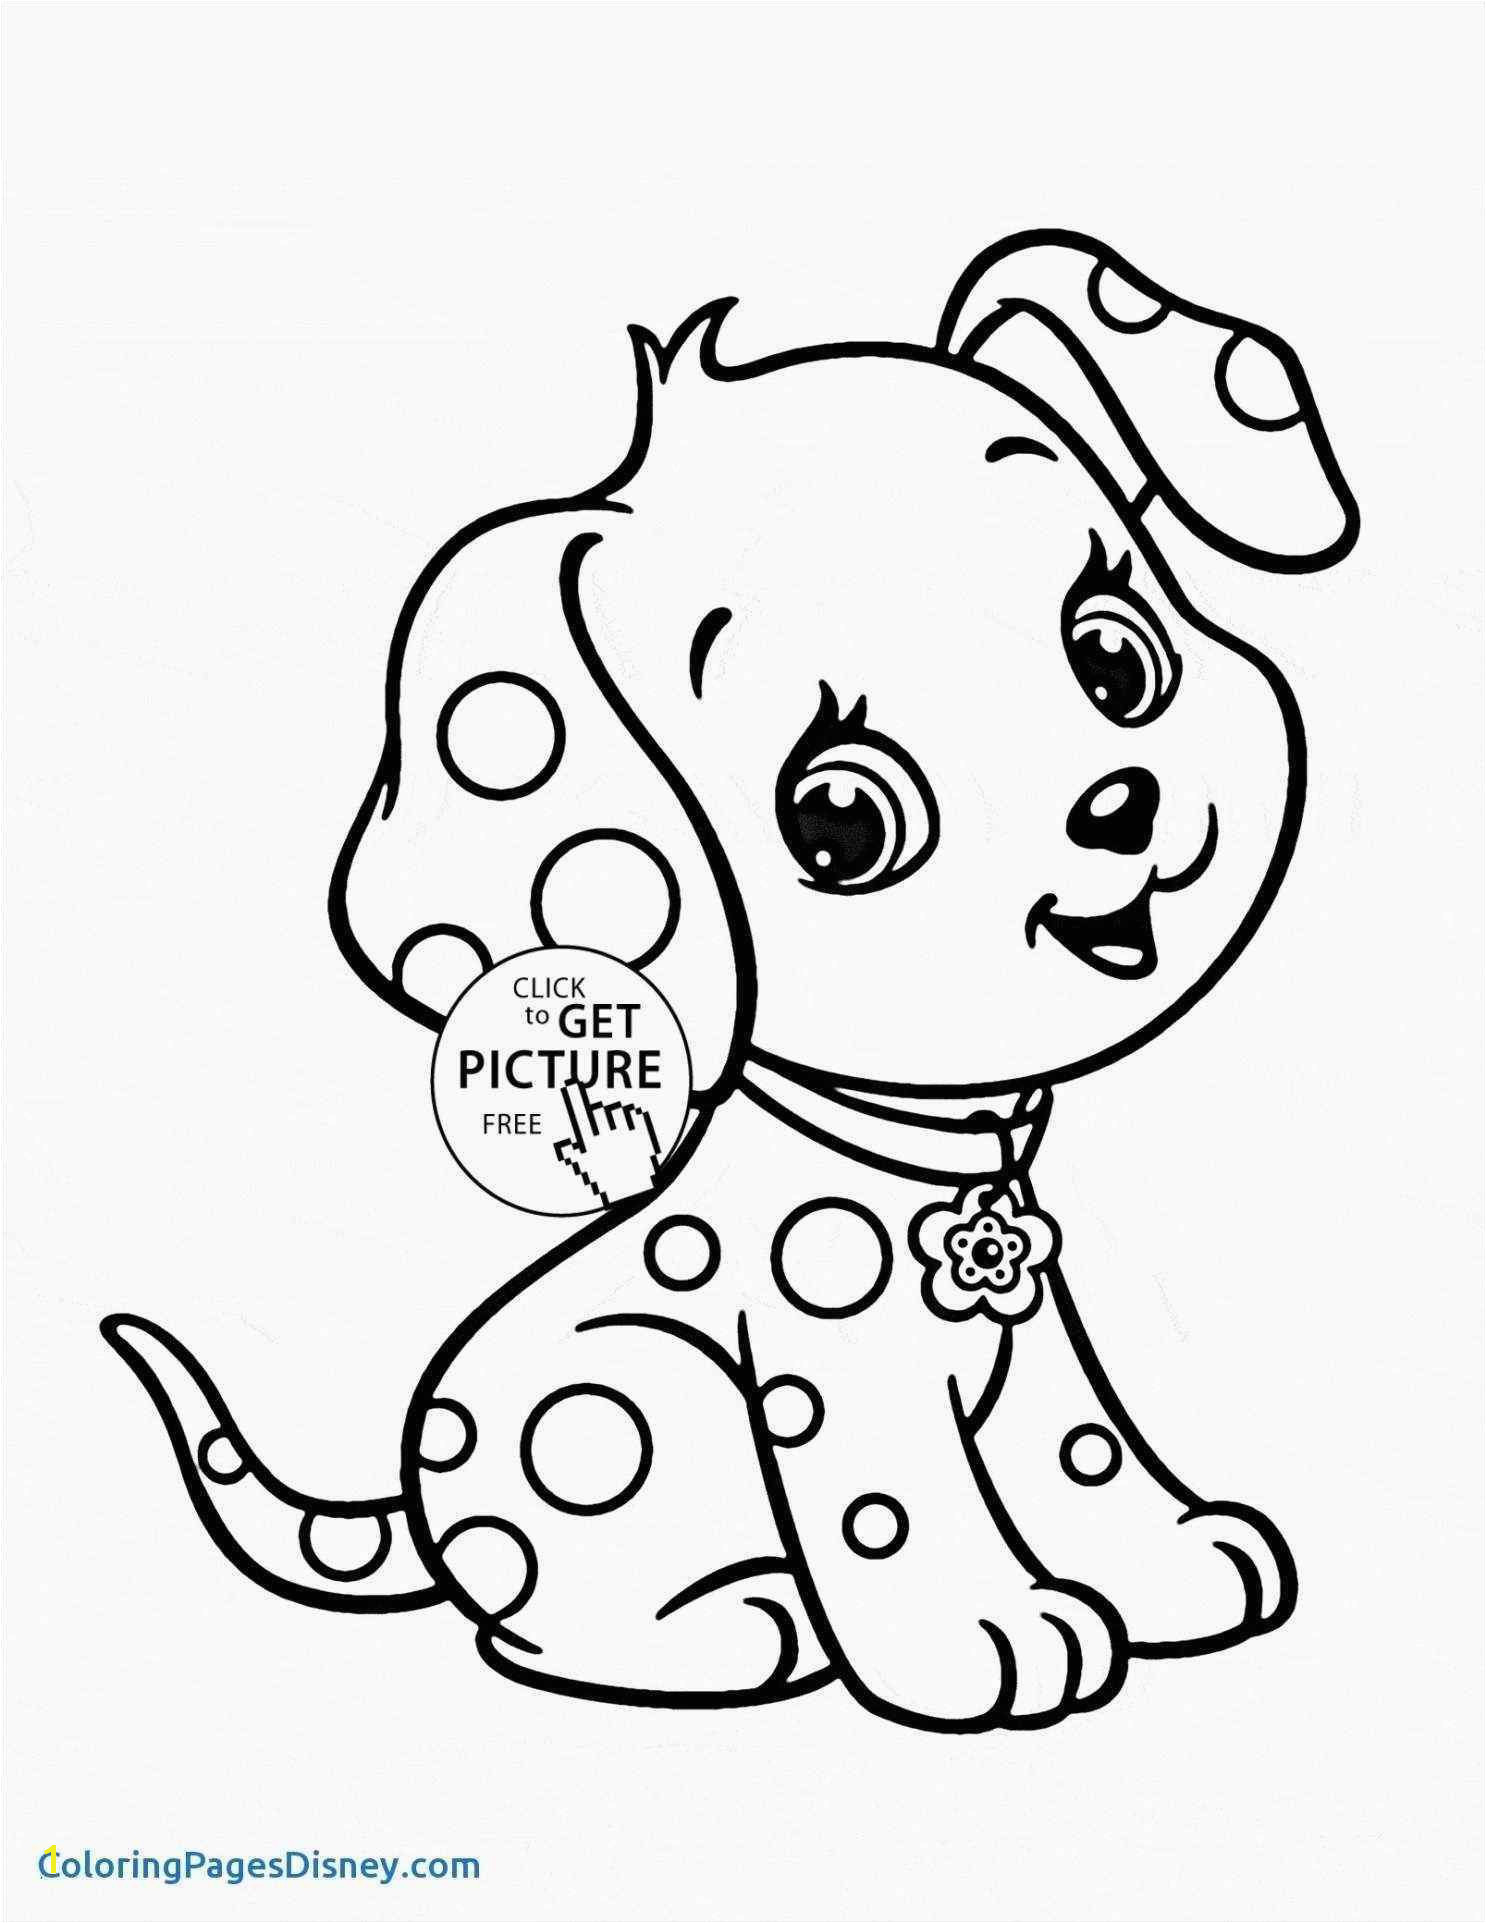 Christmas Reef Coloring Pages Christmas Wreath Clipart Black and White Fresh Free Coloring Pages